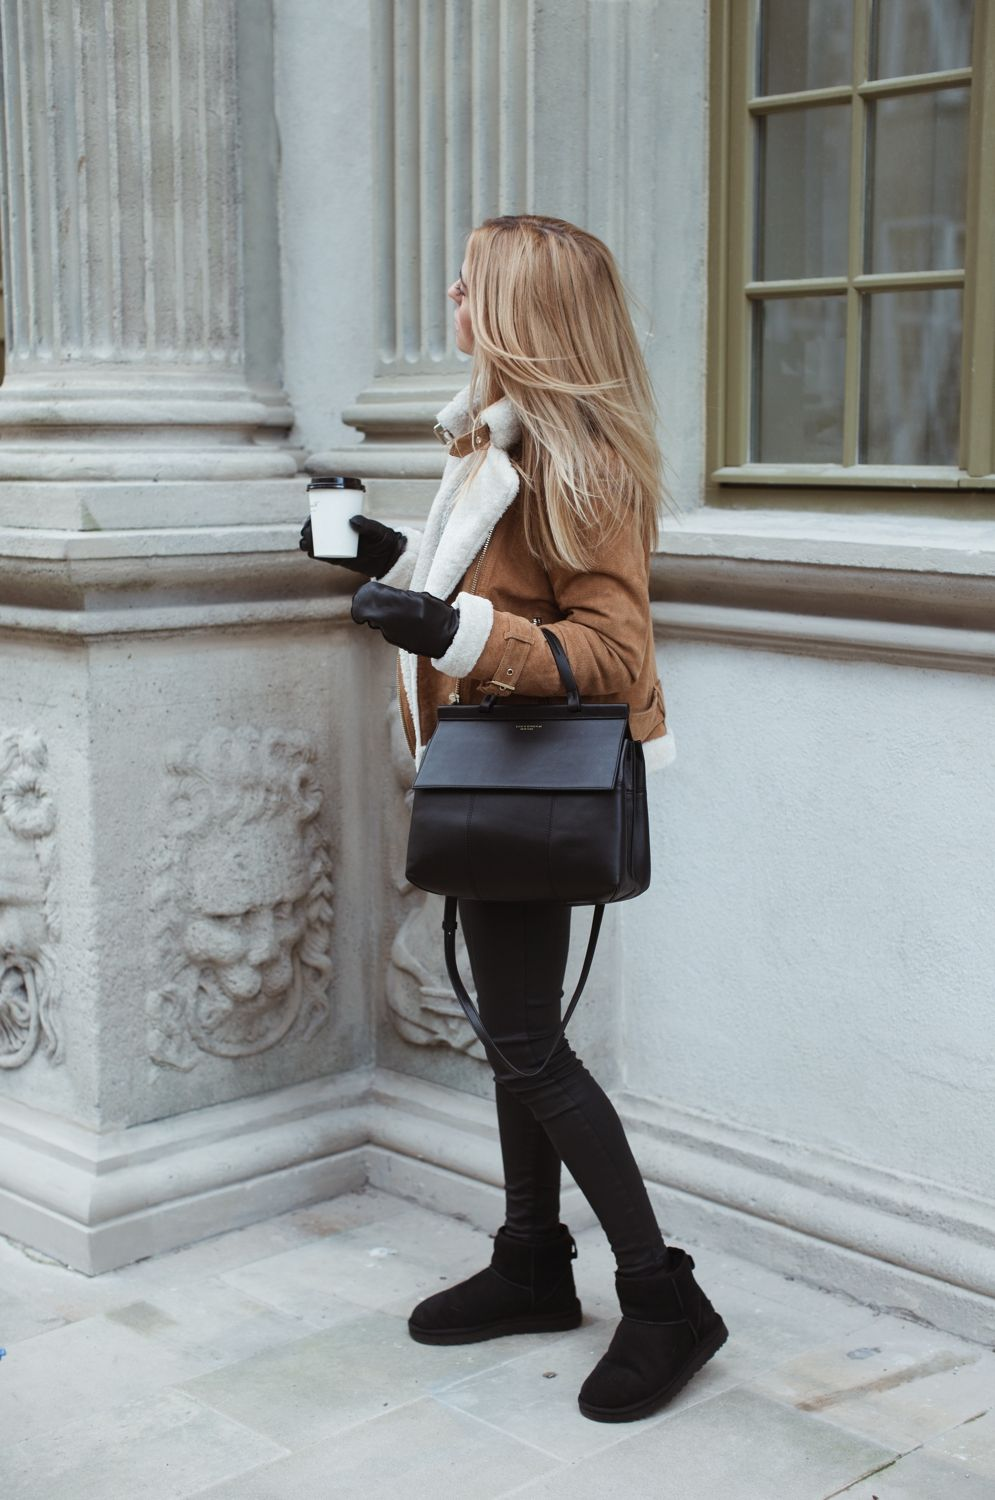 Makelifeeasier Pl Photography Style Daily Moments Strona 5 Winter Fashion Outfits Fashion Style